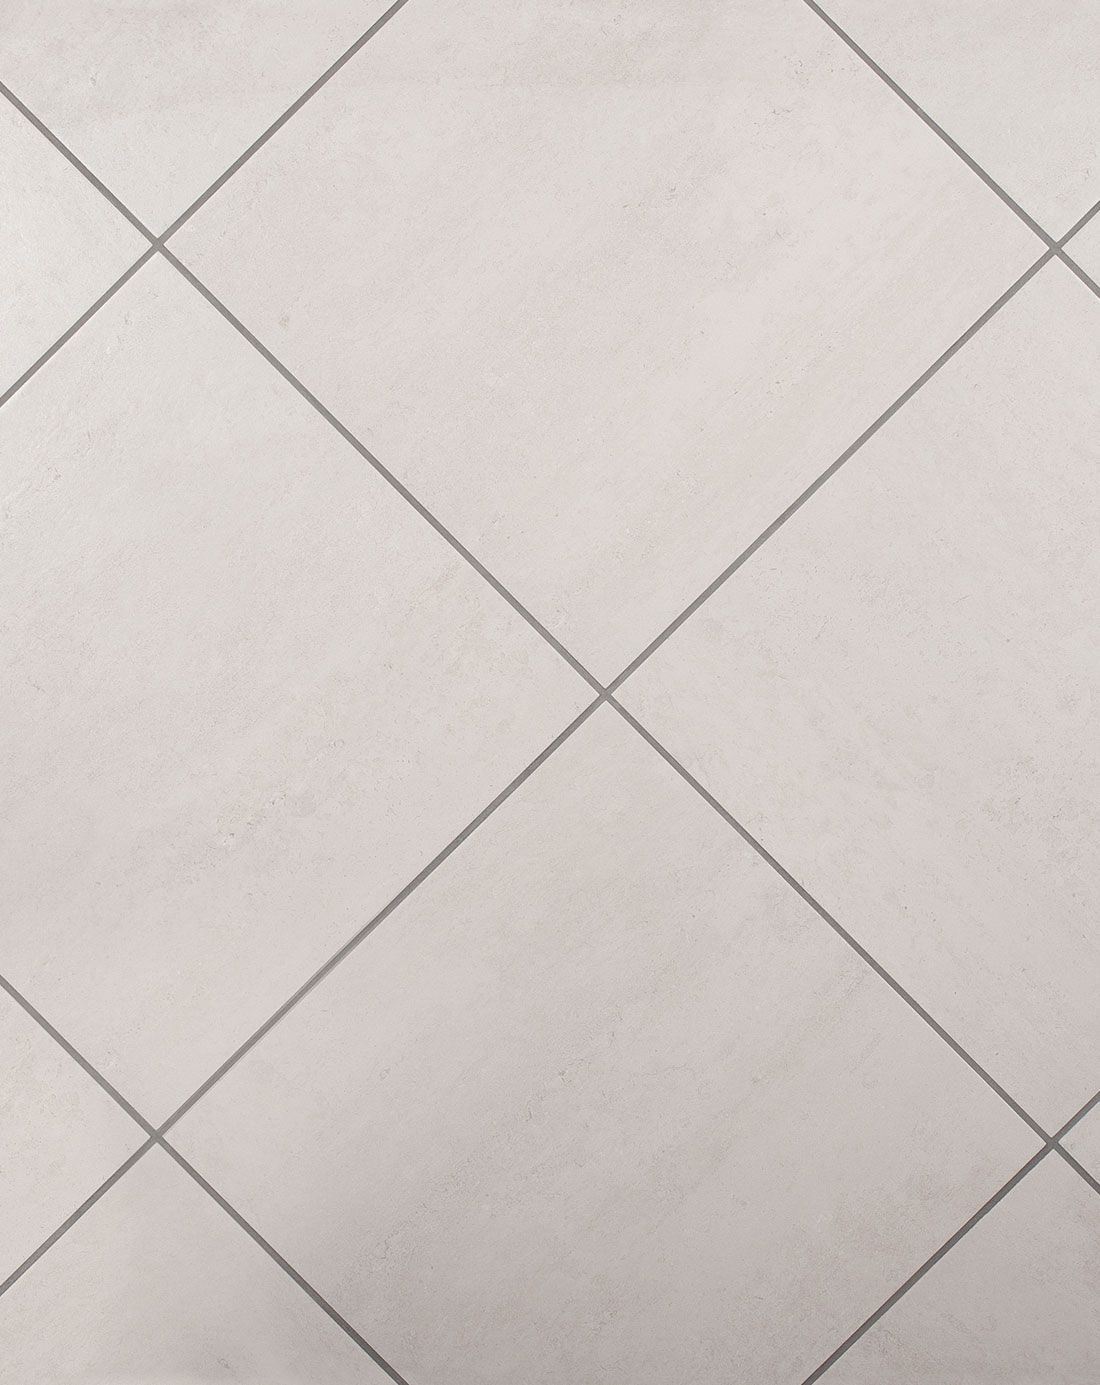 Bianco concept kitchen floor tiles 1895m2 free samples bianco concept kitchen floor tiles 1895m2 free samples dailygadgetfo Image collections